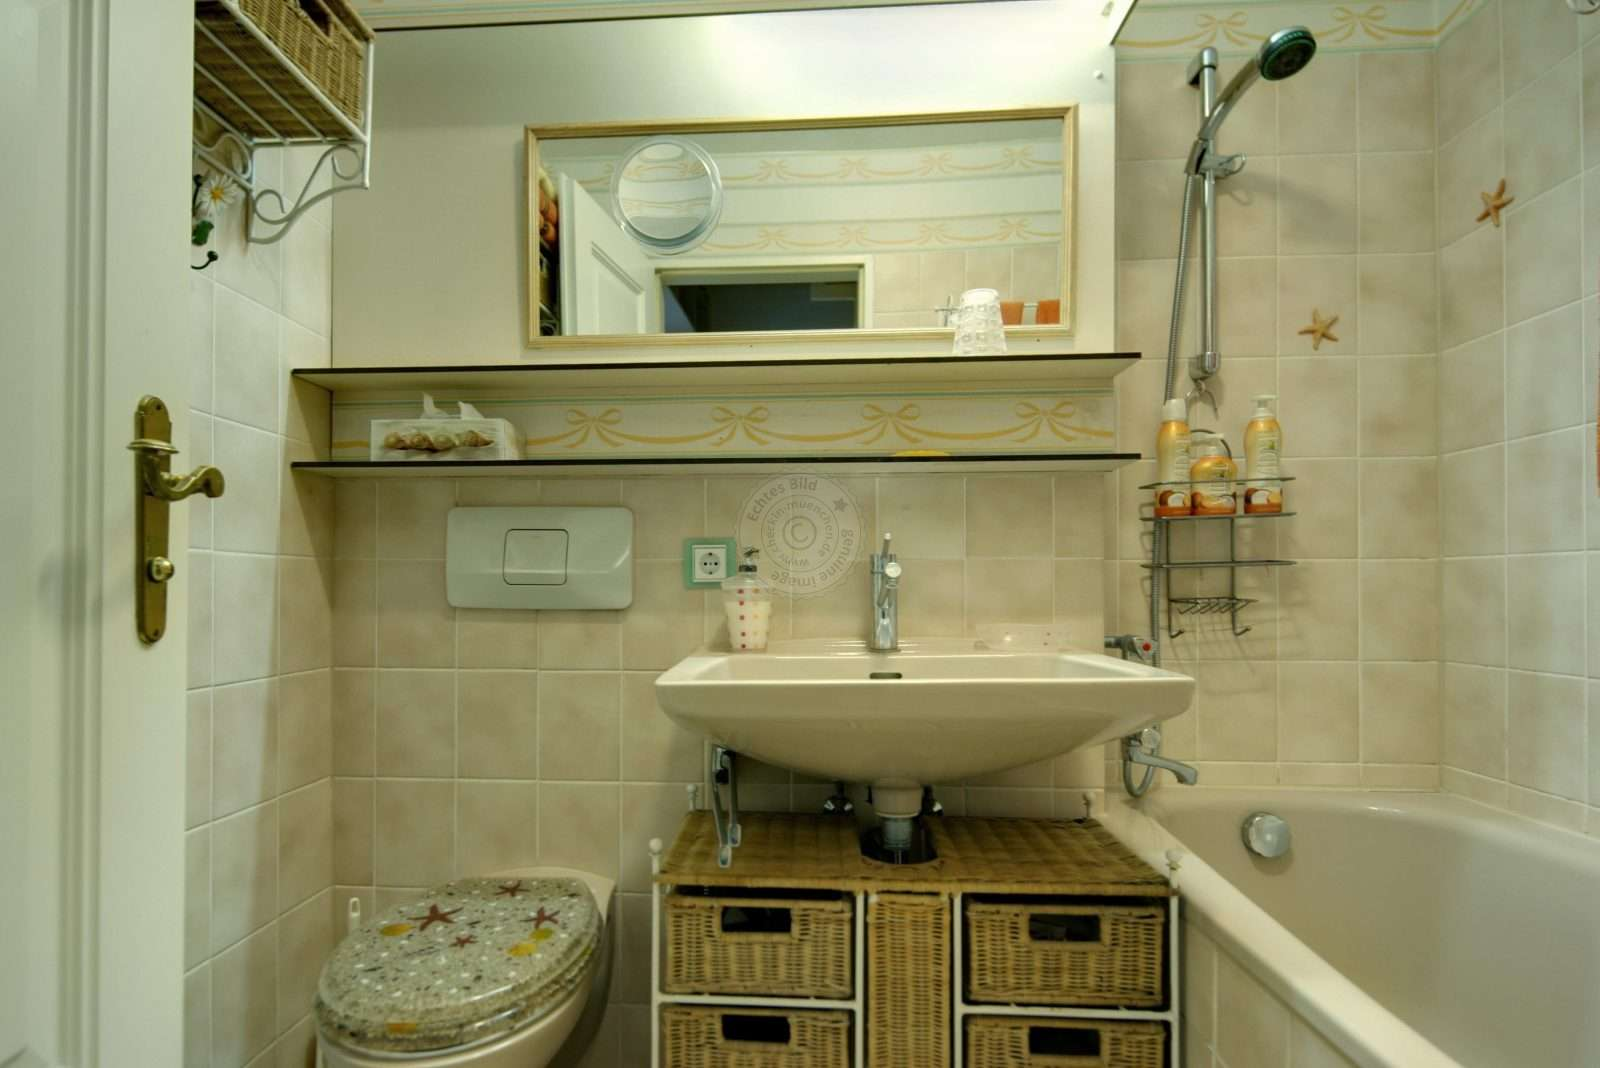 Small extras in the bathroom, such as an integrated vanity mirror